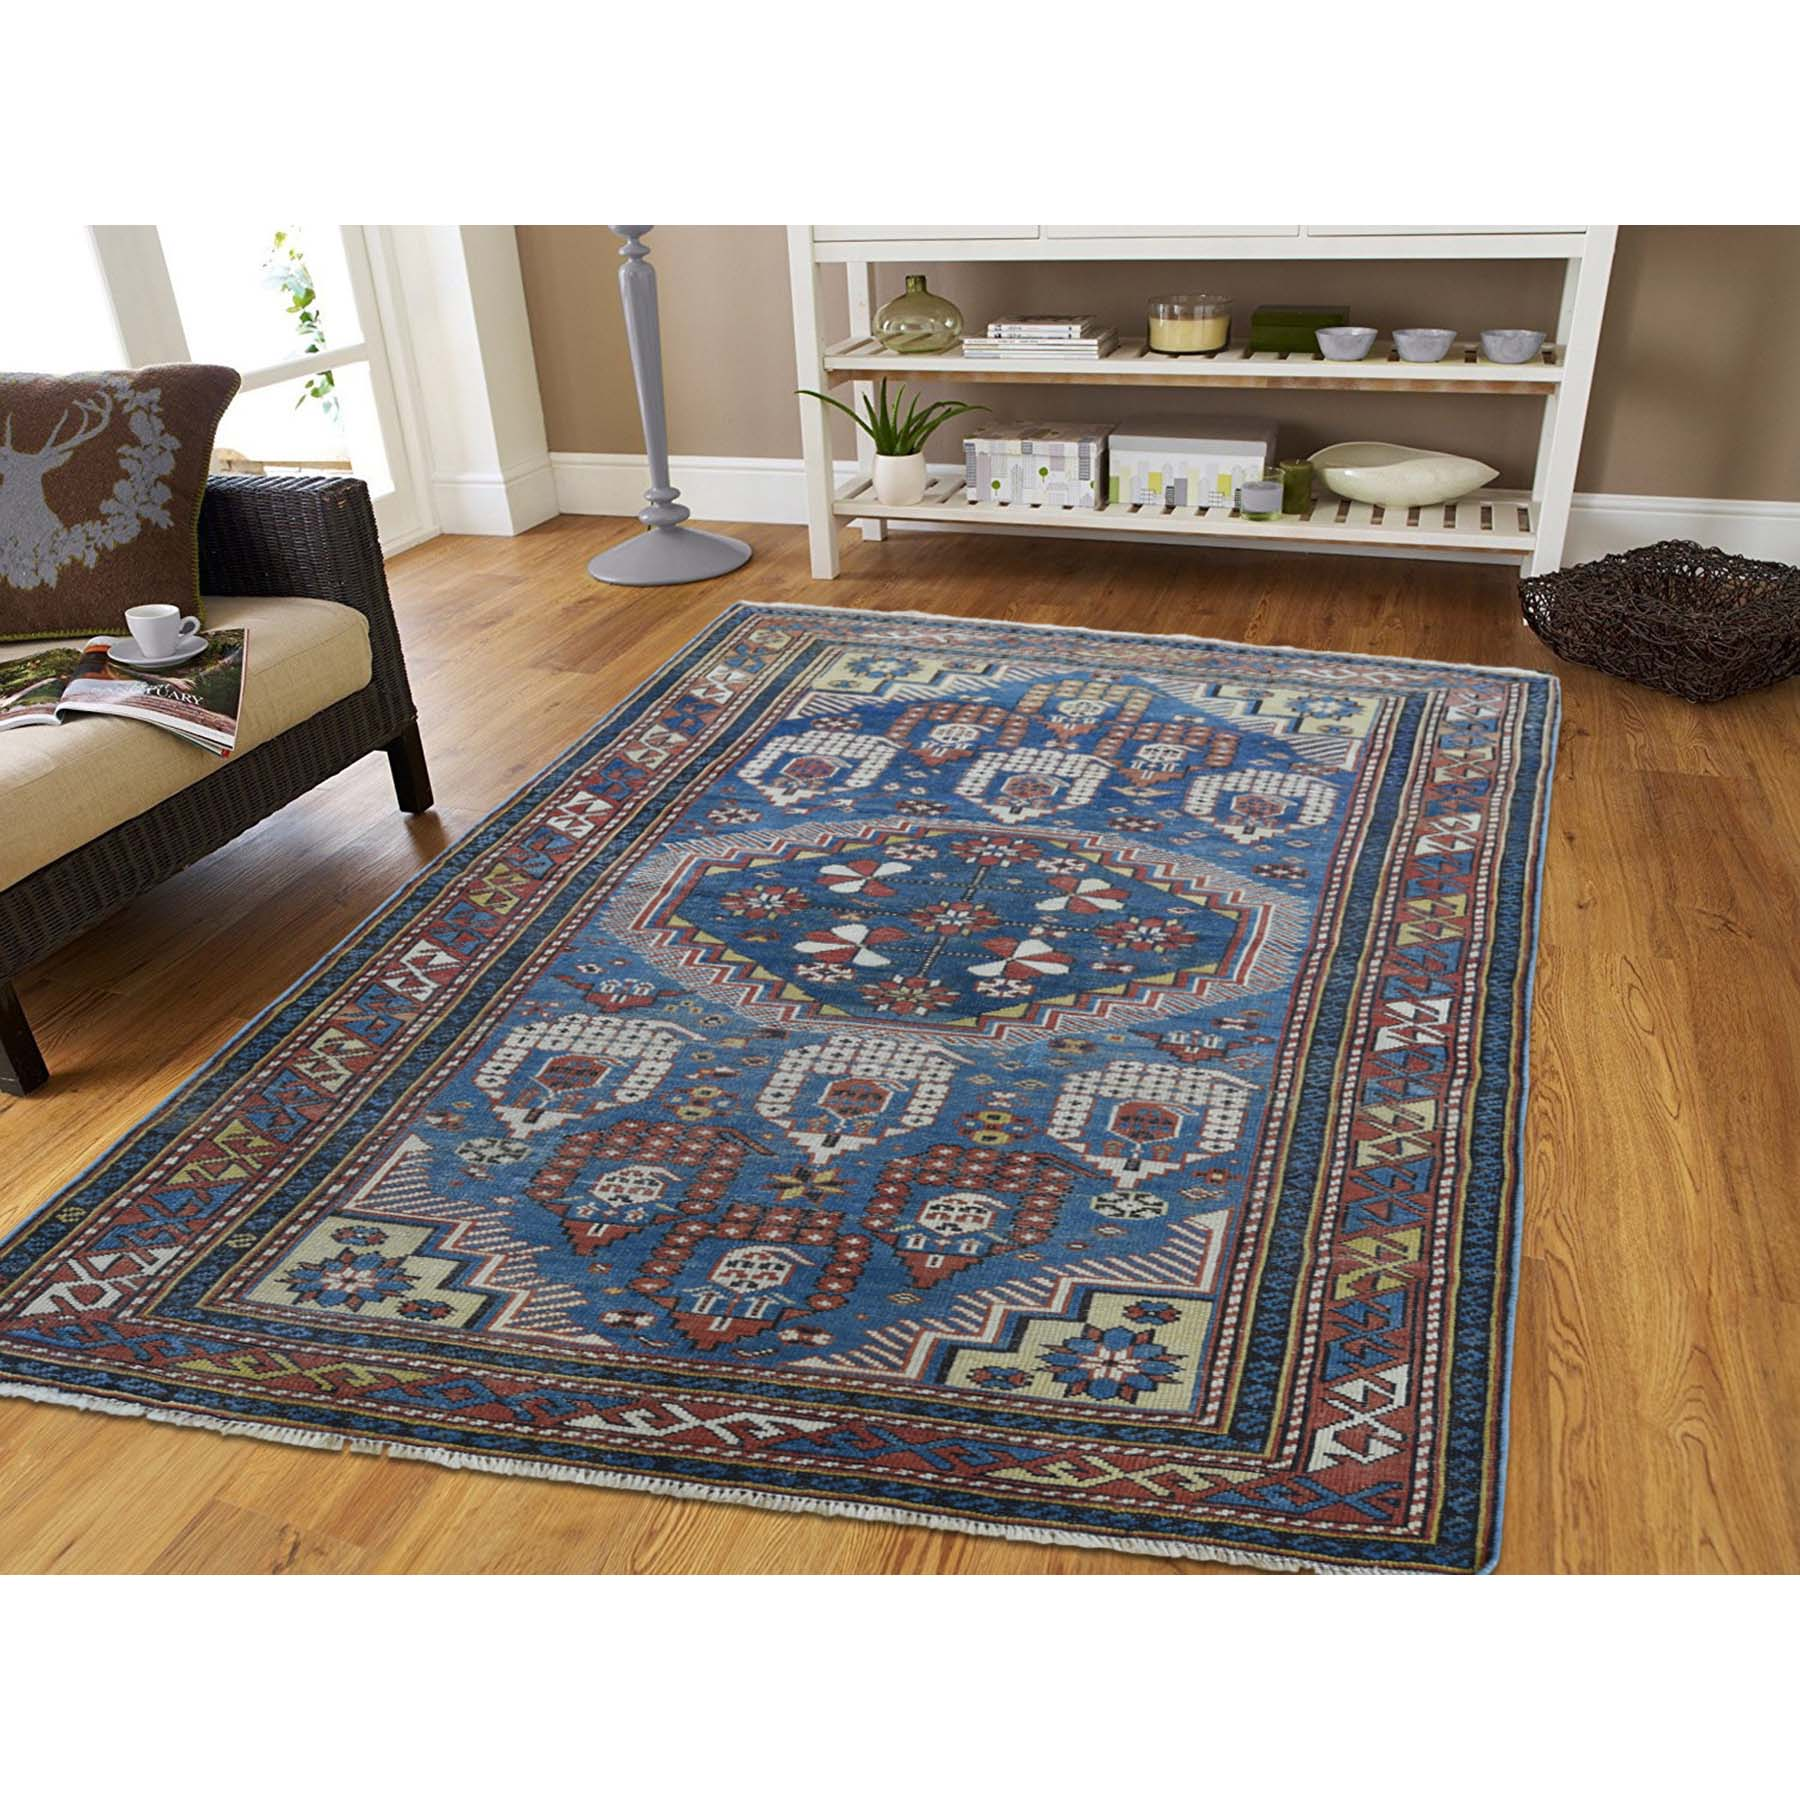 Antique Collection Hand Knotted Blue 0182500 Rug